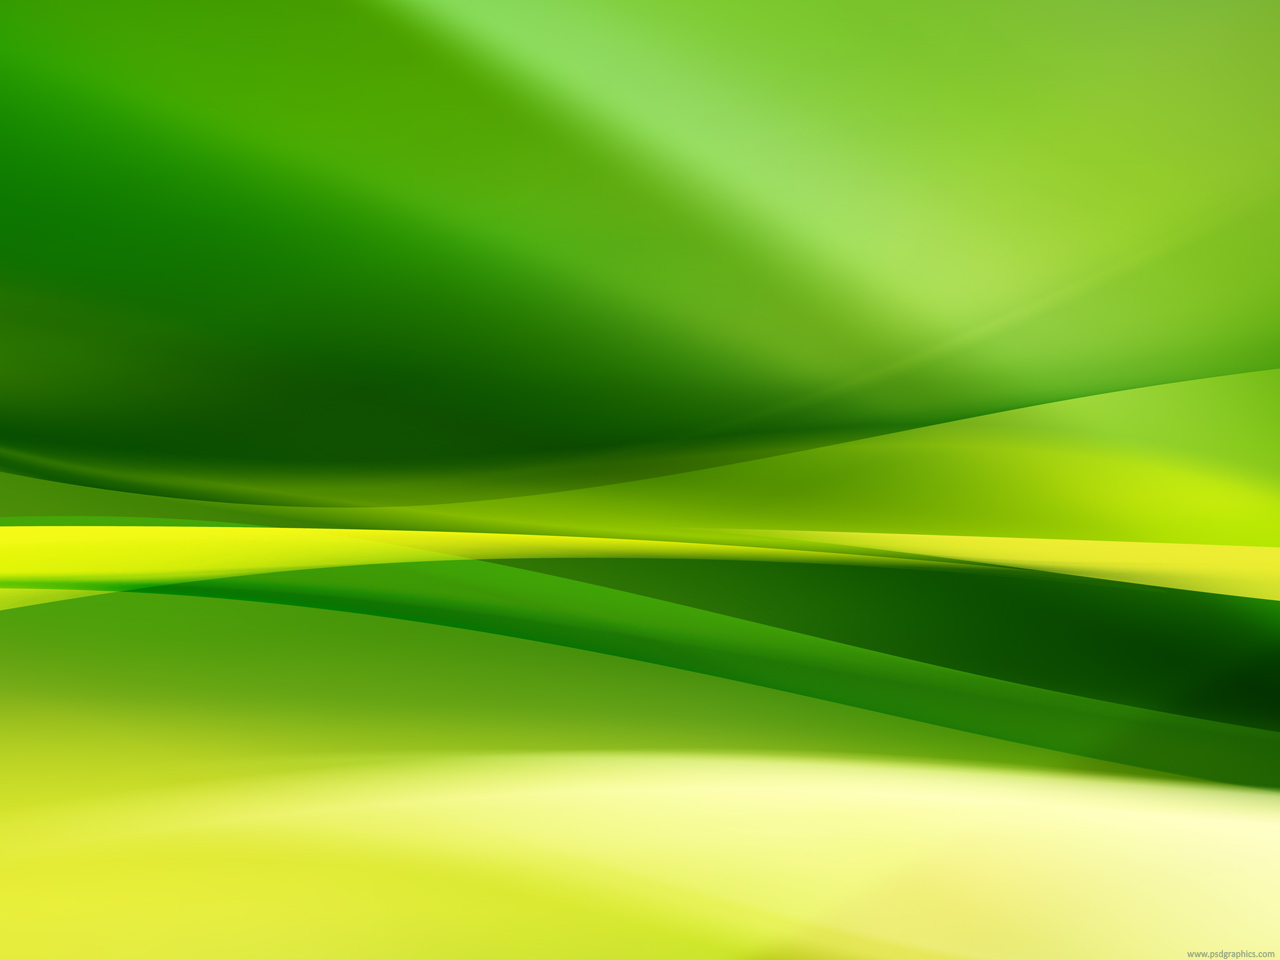 Green Background Design Wallpaper [41+] Yellow an...